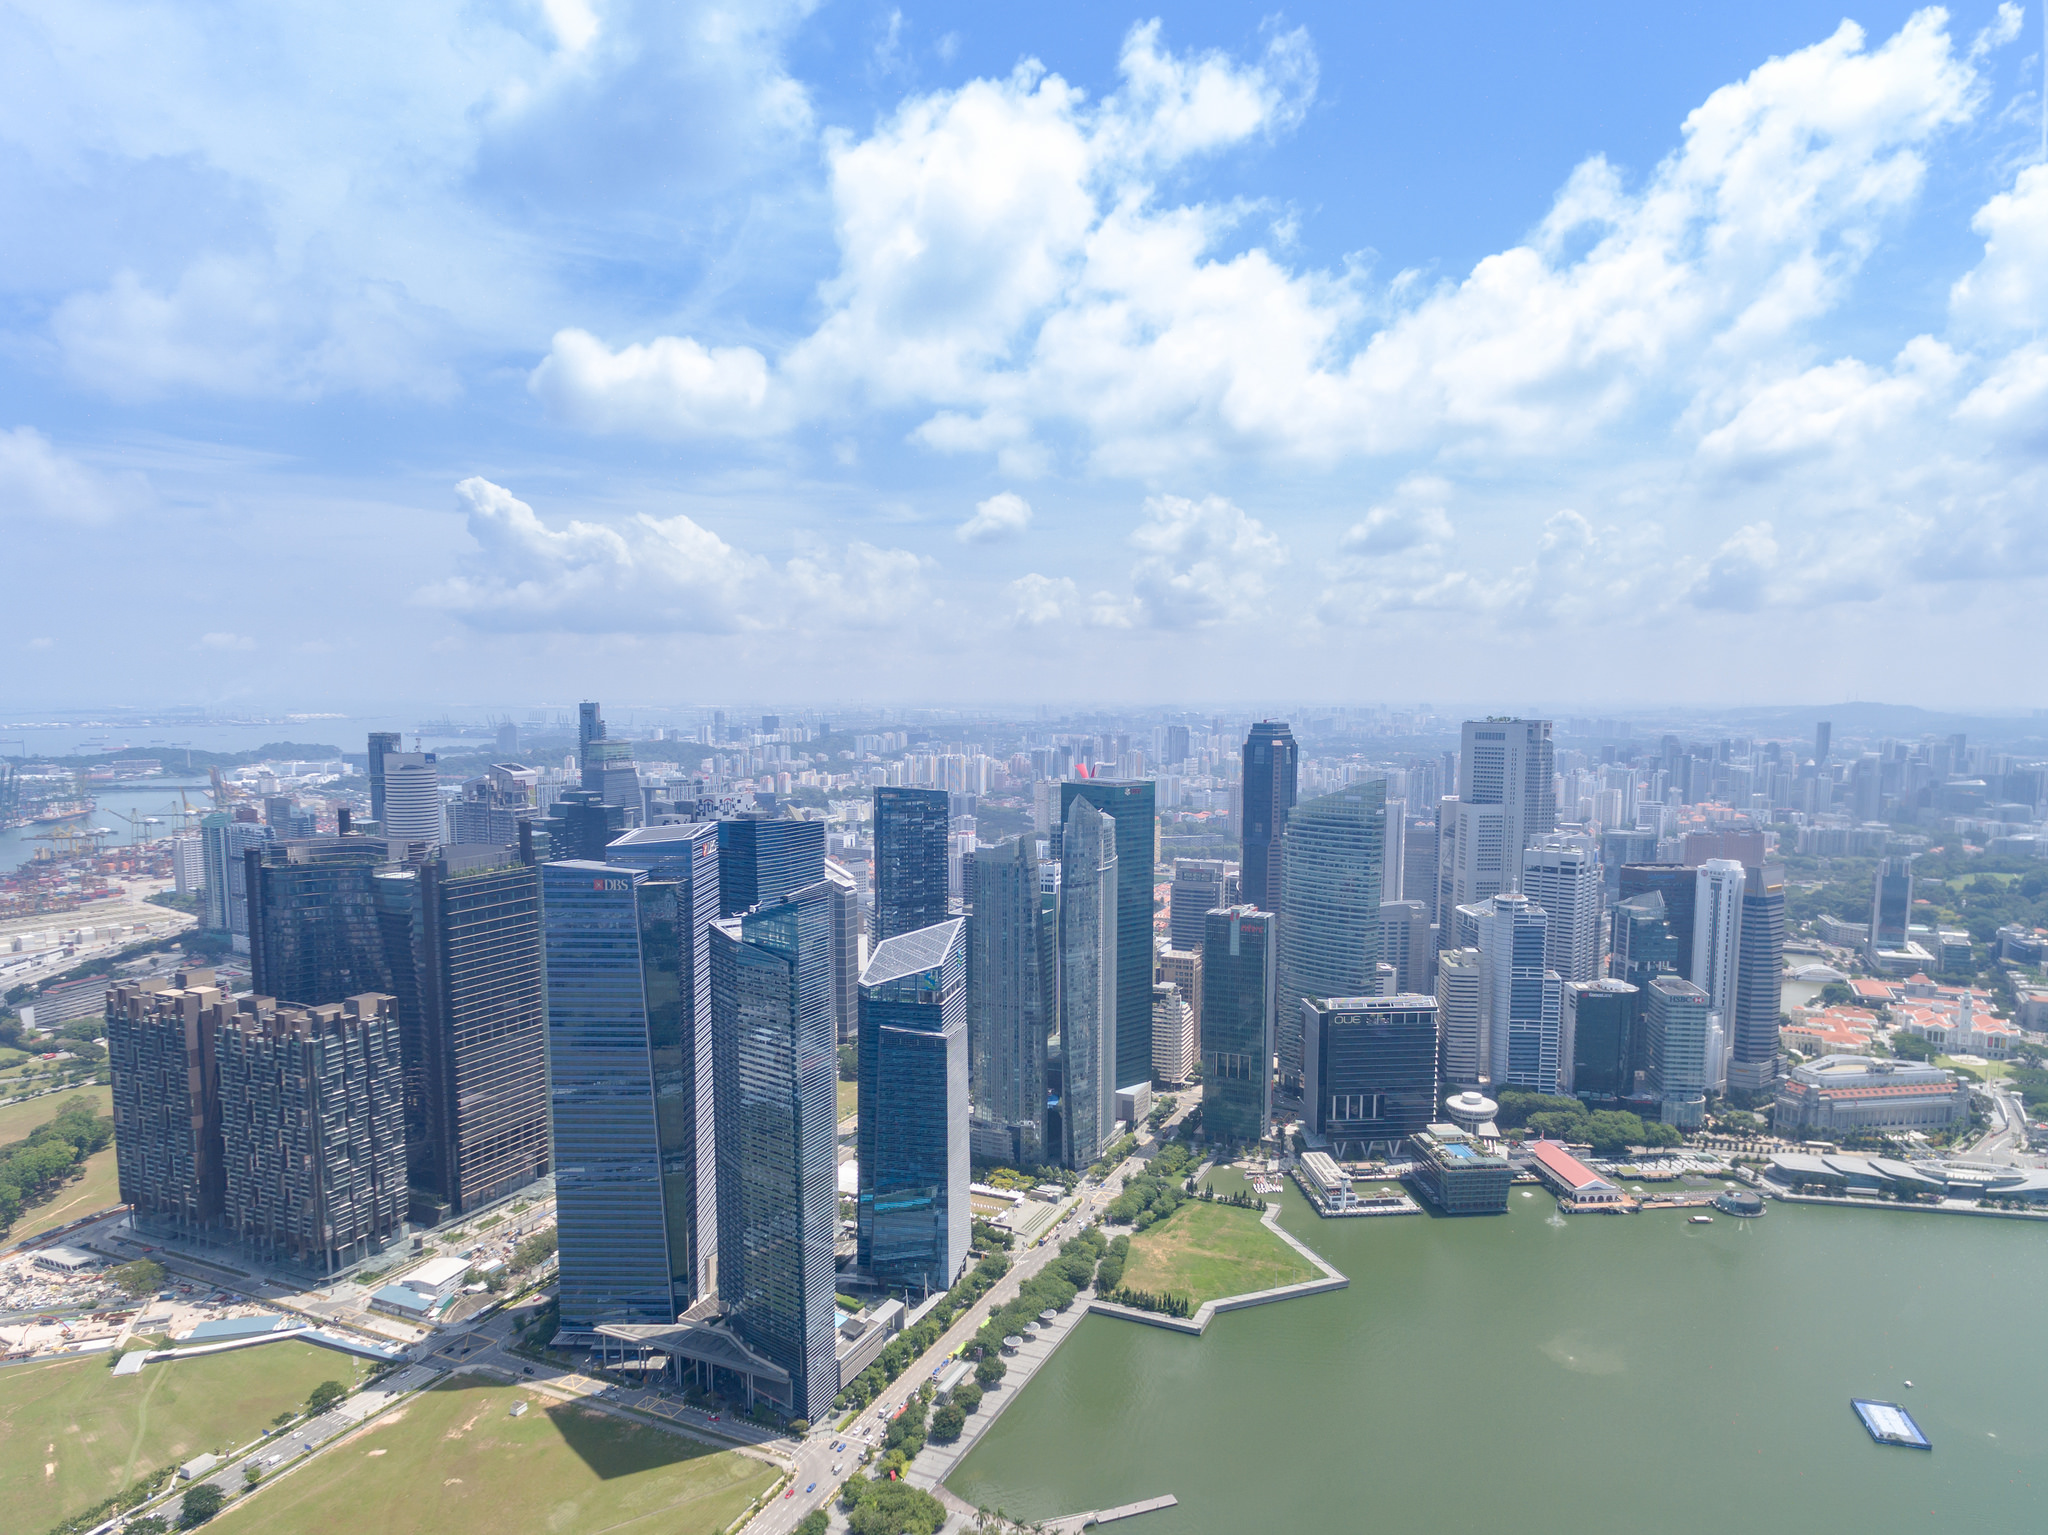 As part of this acquisition, Sembcorp has acquired 100% of the equity interest in the project development company, MSOA Pte Ltd. Image: Falco Ermert